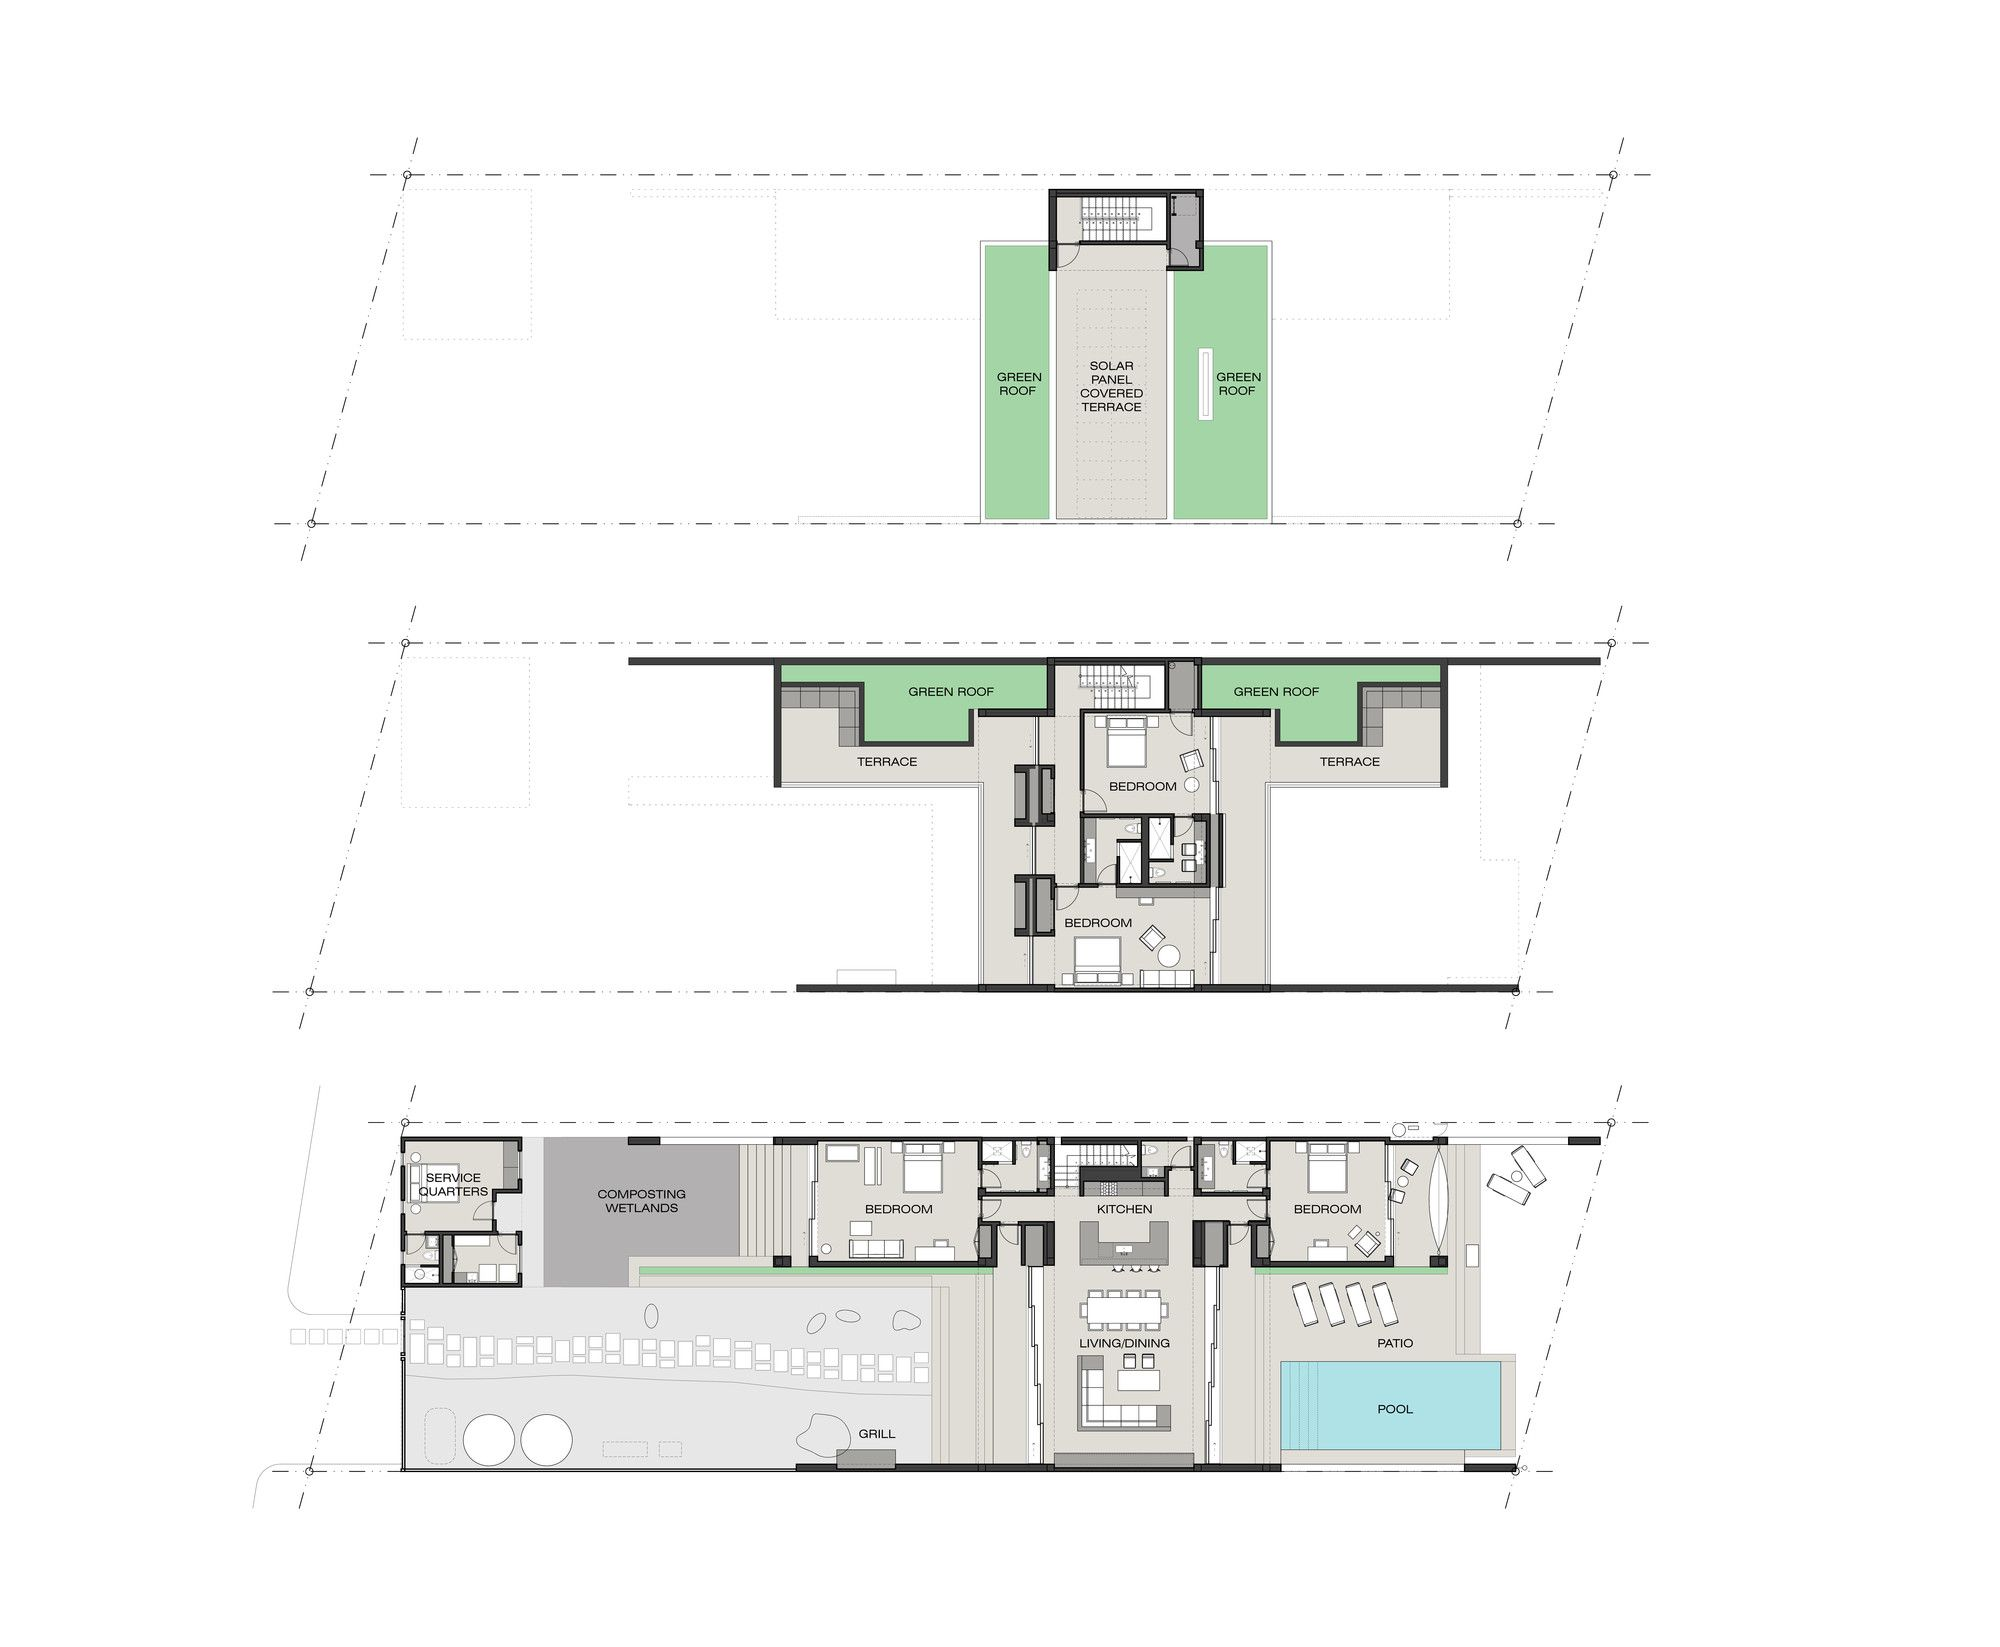 Gallery of Casa Xixim / Specht Harpman - 19 | layout | Pool ... on mexican beach home, mexican beach house design, mexican beach interior design, hacienda homes with floor plans, mexican small house floor plans, mexican beach architecture,